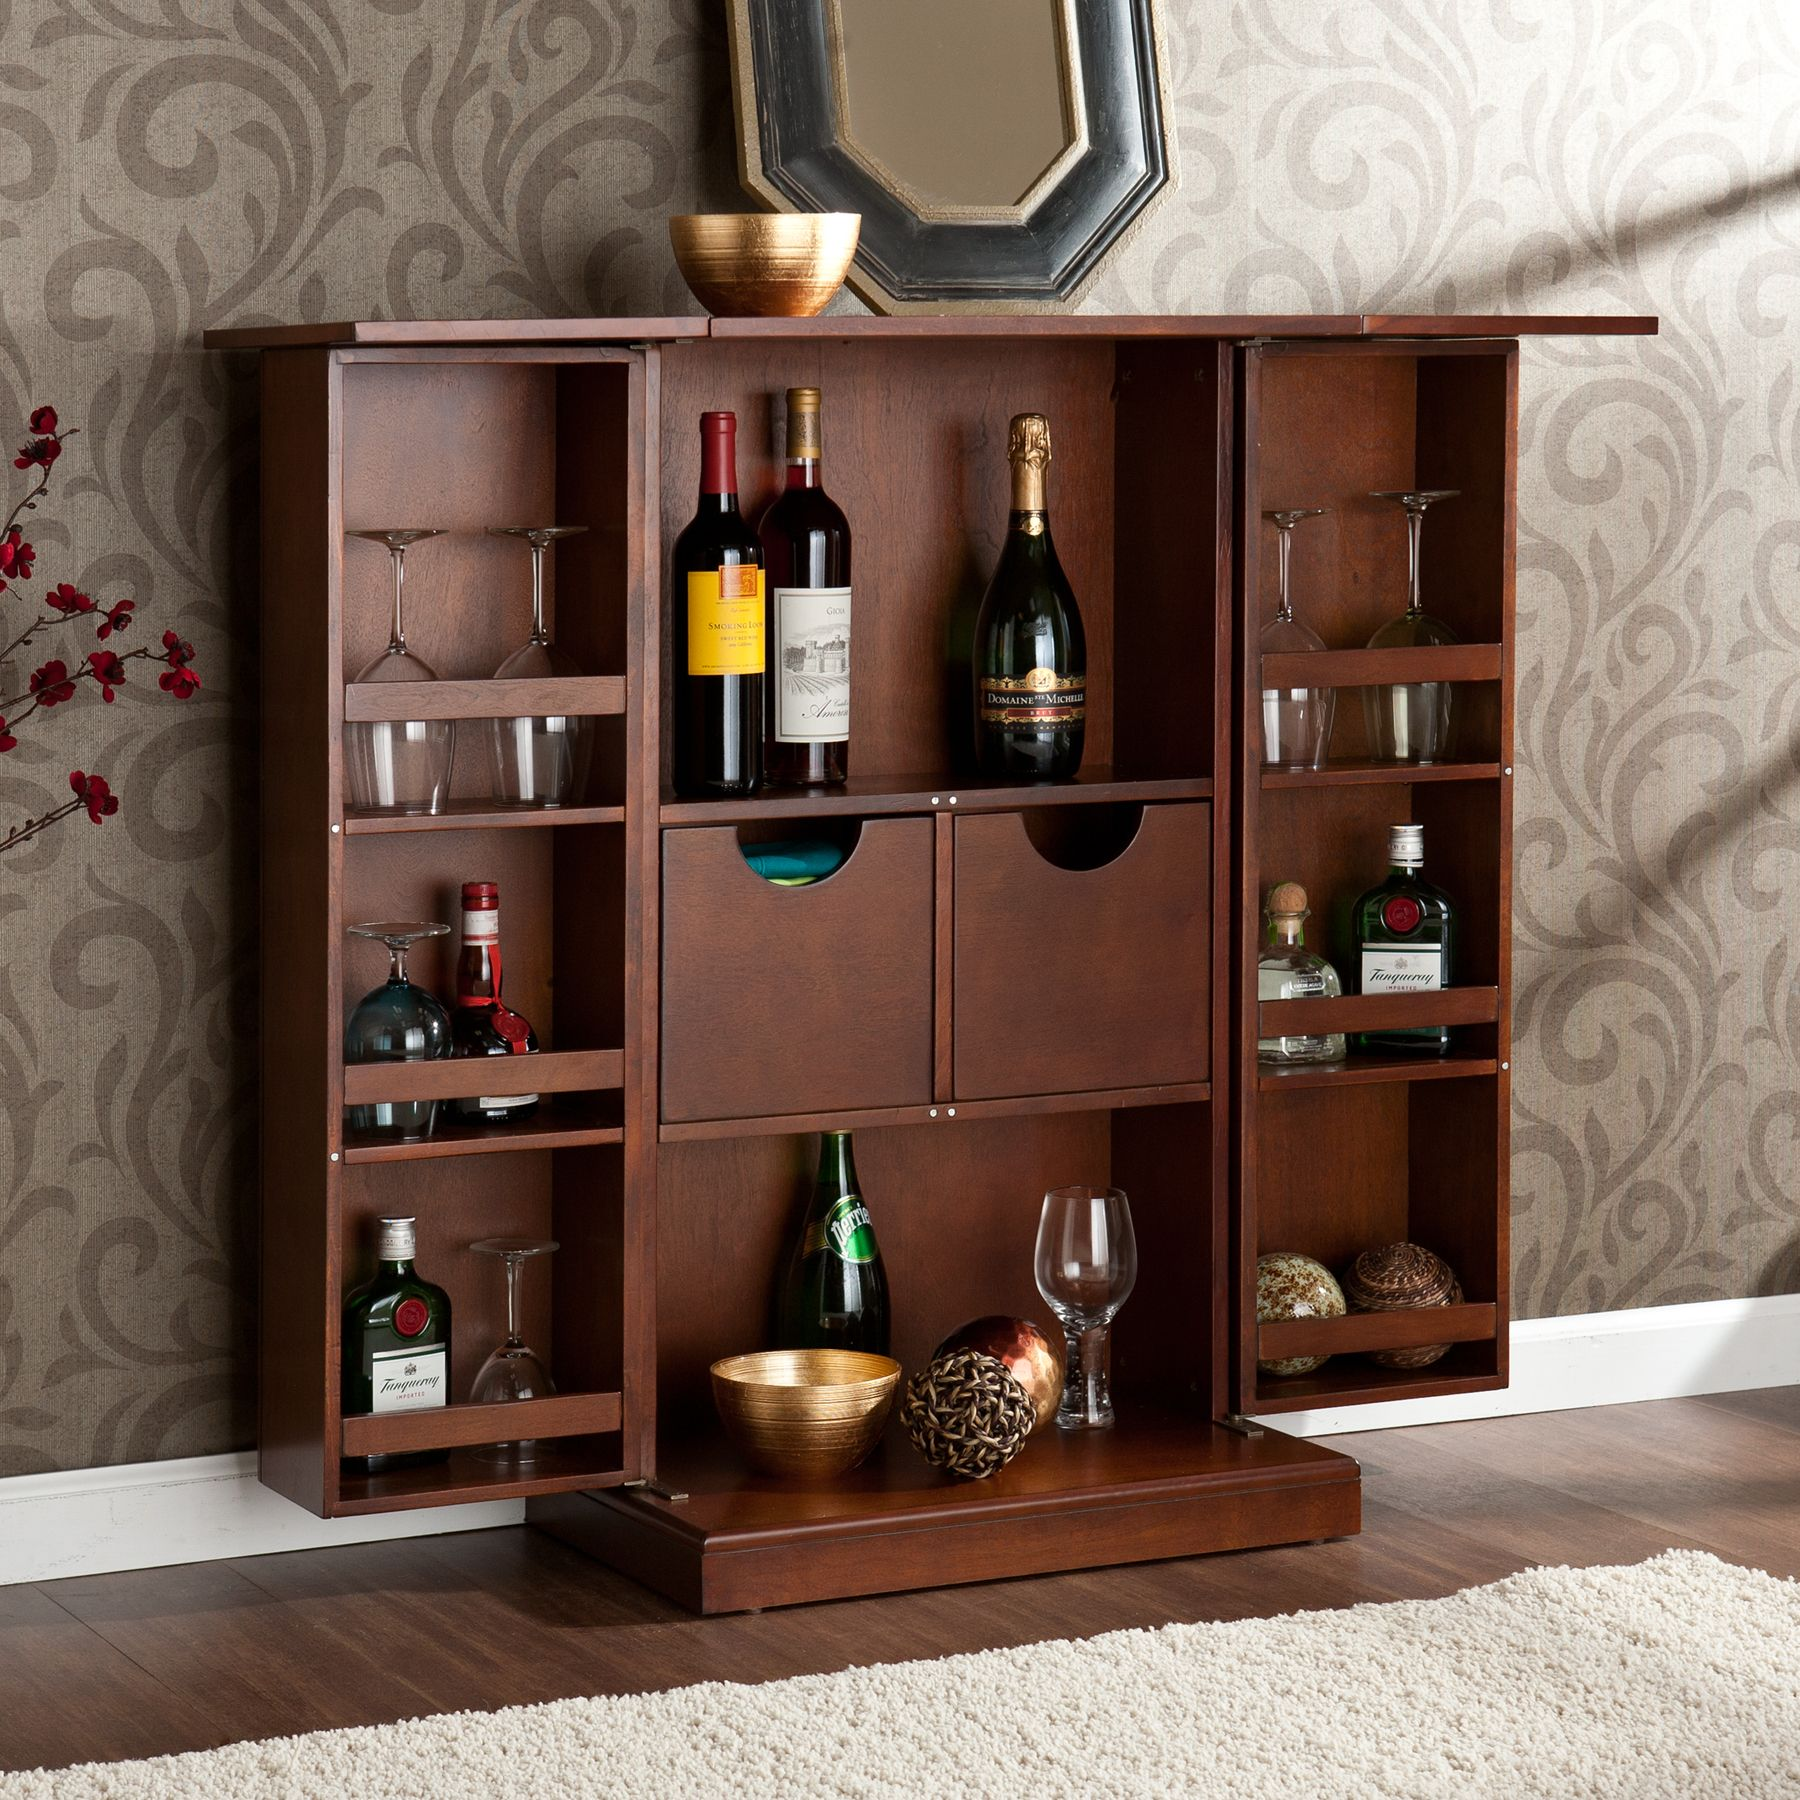 Mini bar cabinet design ideas for How to build a mini bar cabinet